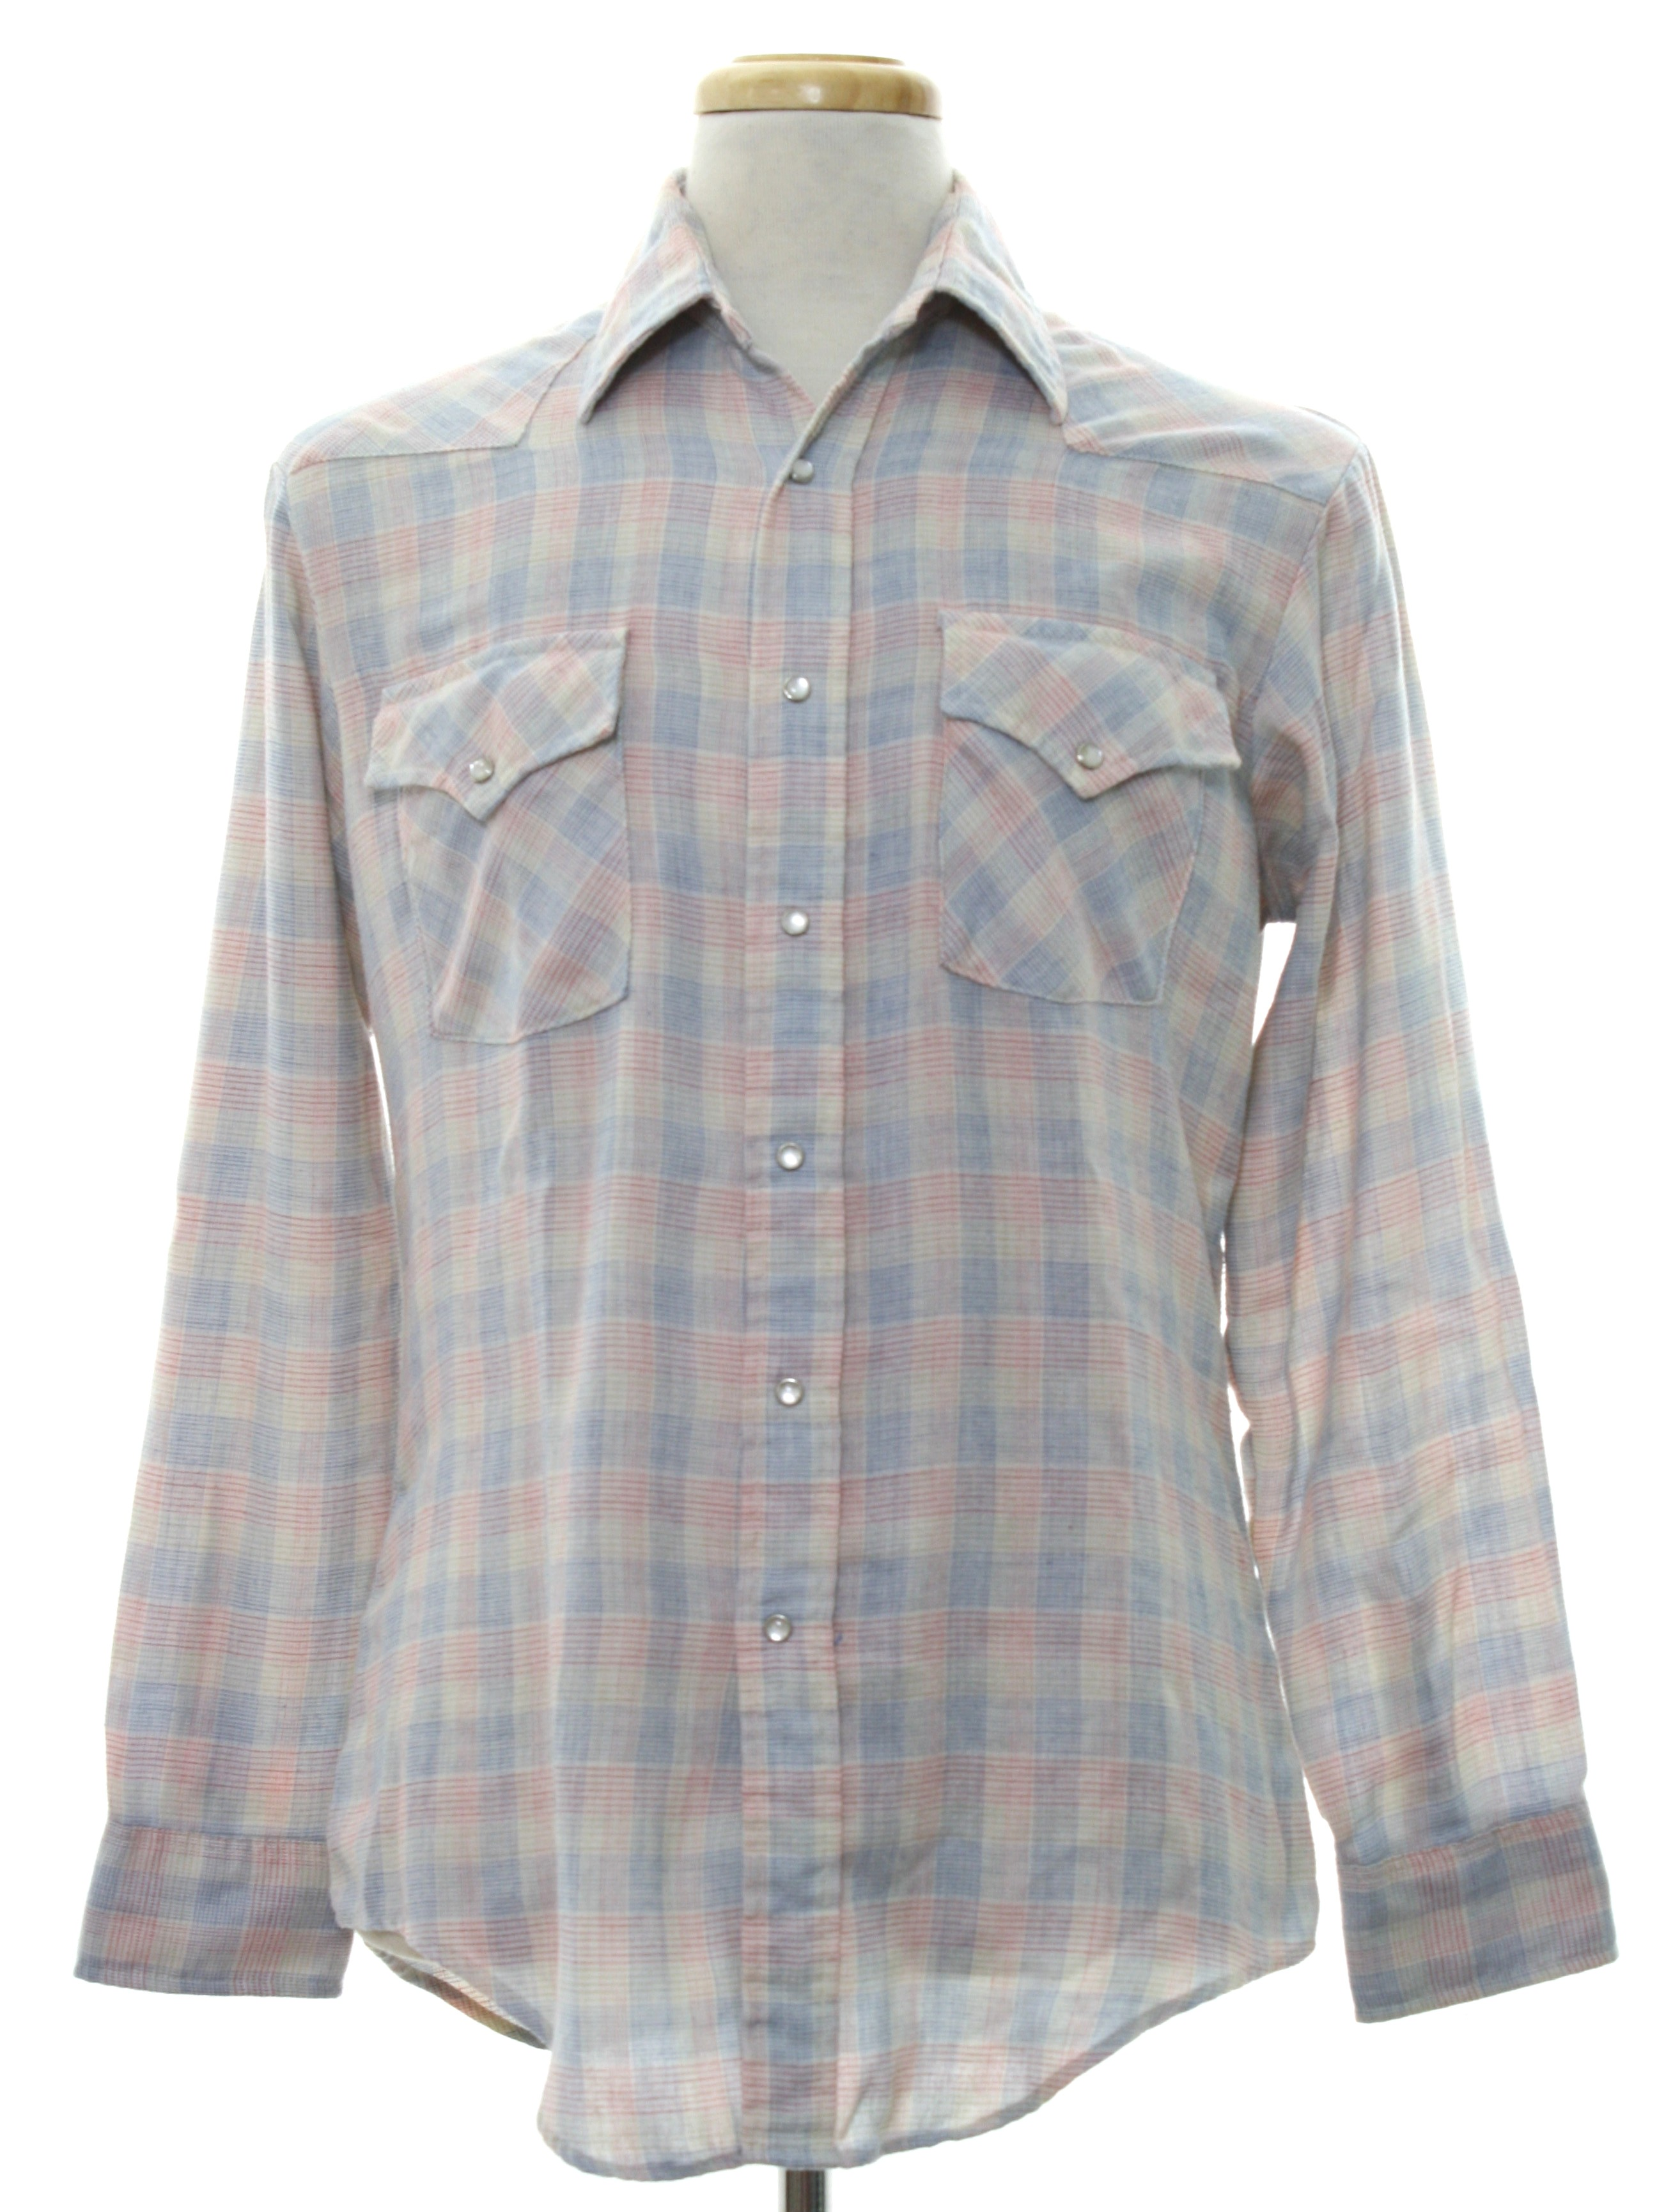 Retro 70s Western Shirt Jeans Joint 70s Jeans Joint